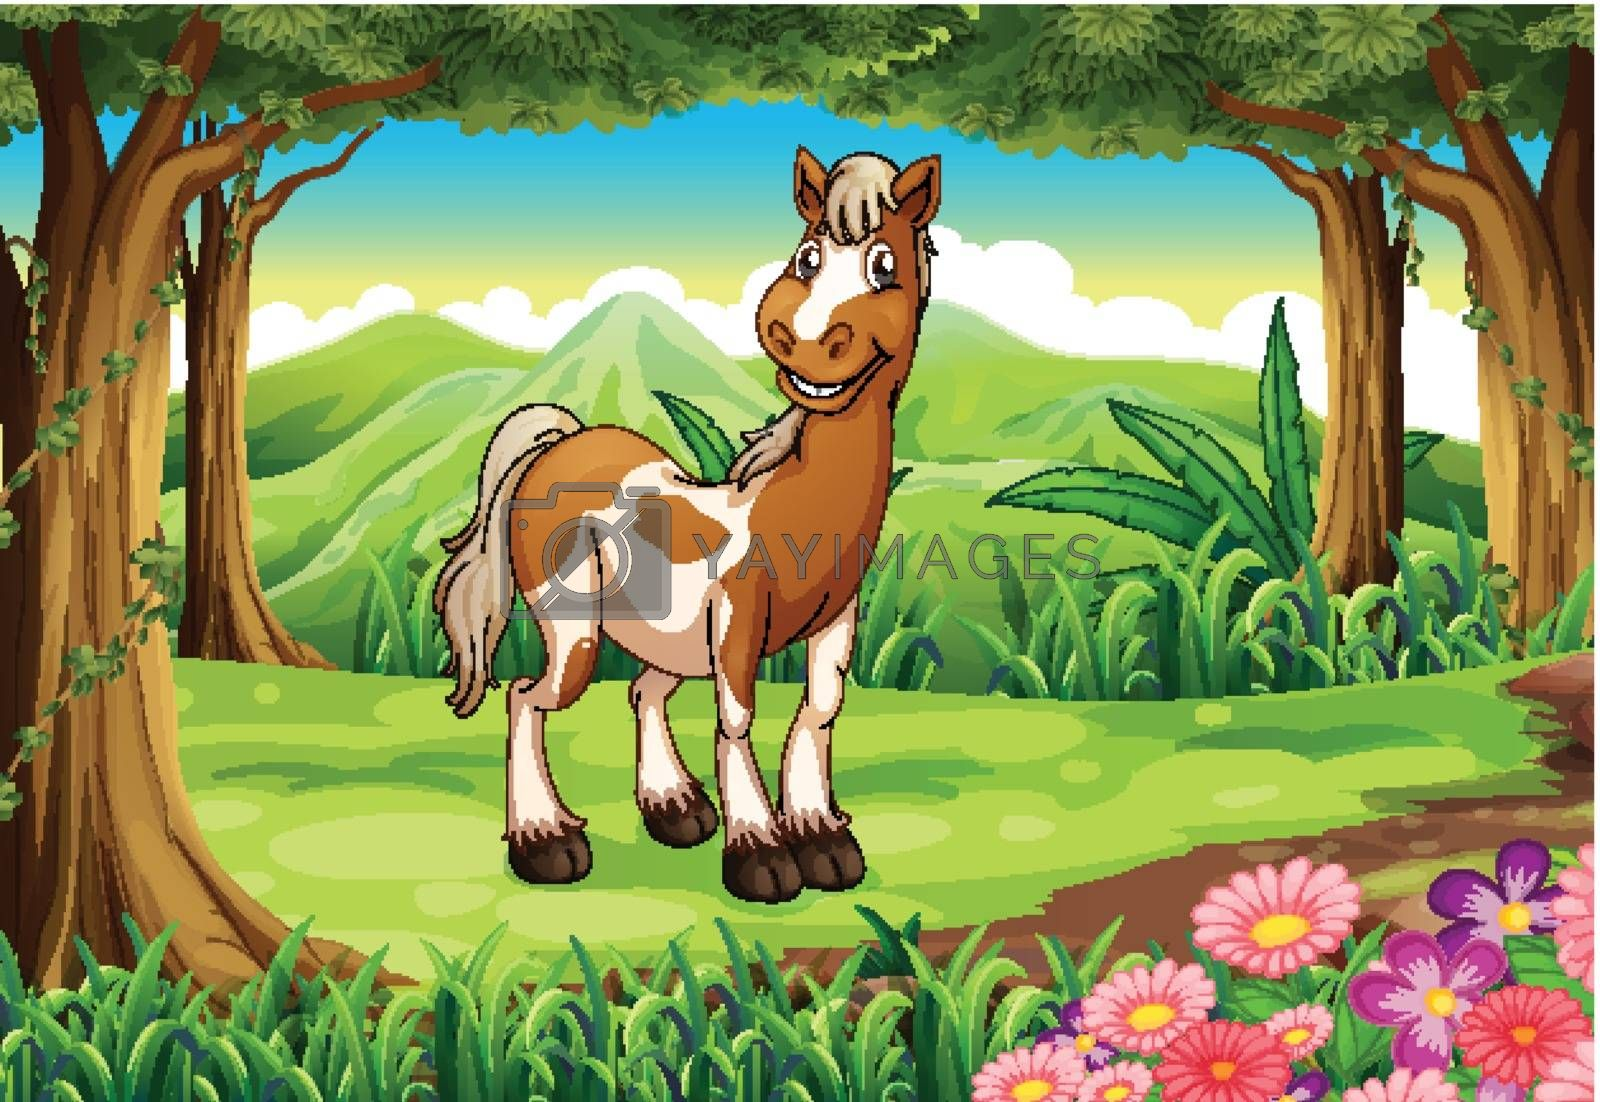 Illustration of a forest with a smiling horse